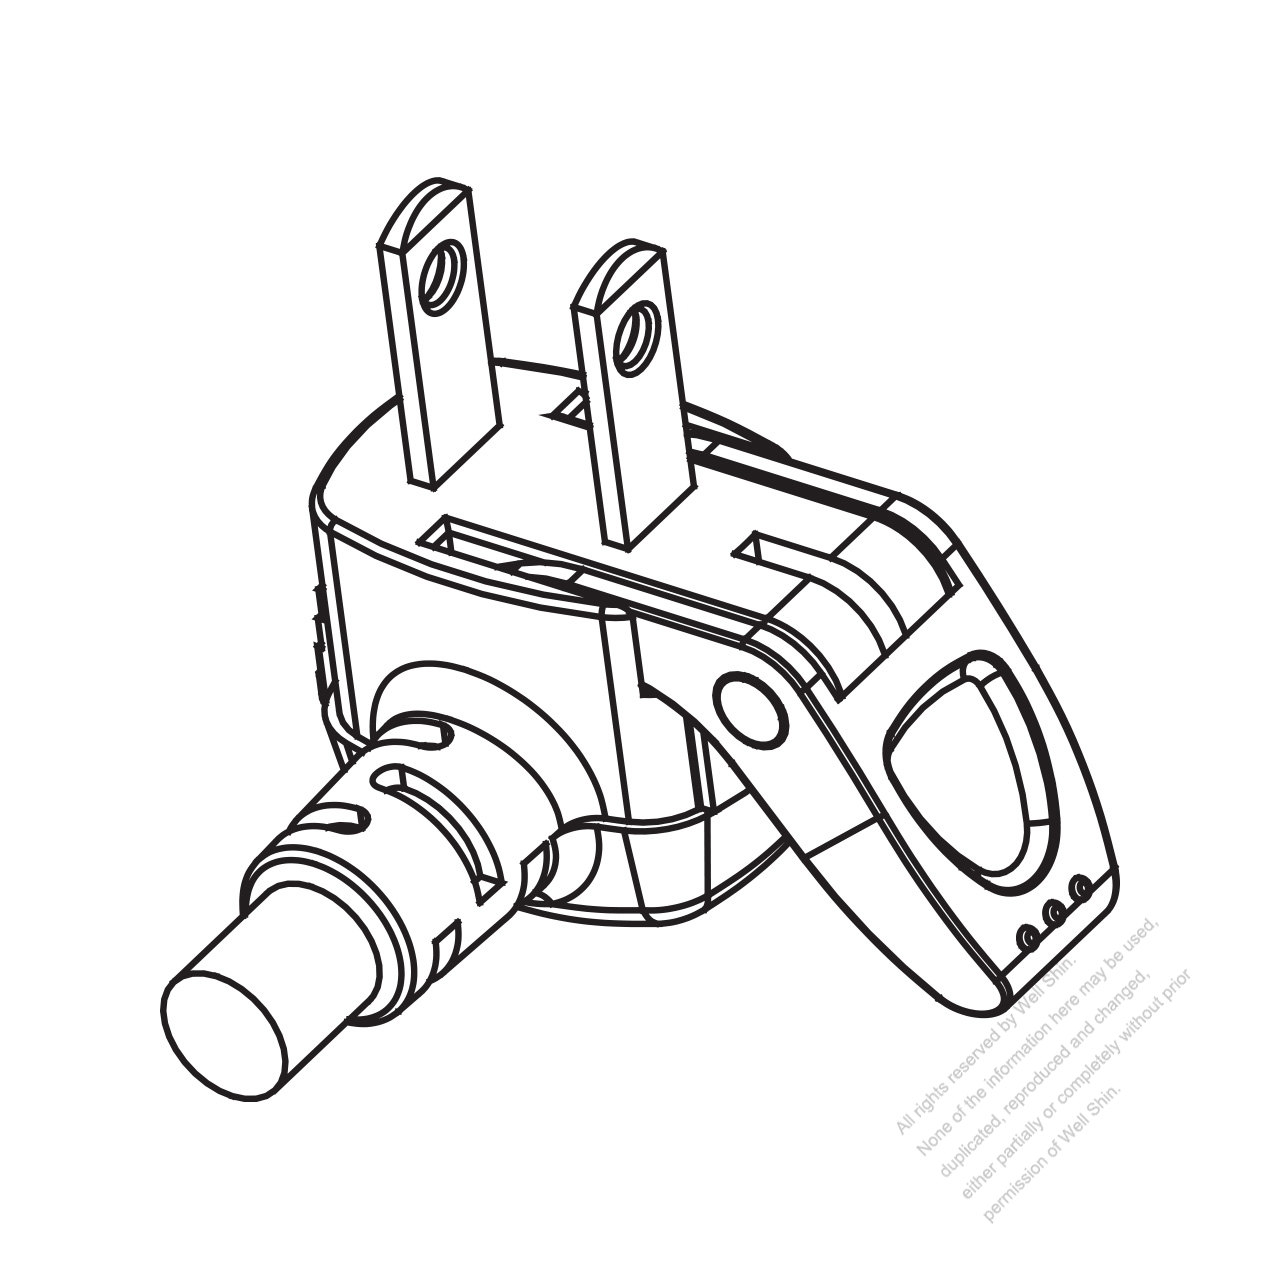 Nema L5 30r Wiring Diagram also 3 Prong Plug Wiring Diagram further Gm L21 Engine together with Wiring 220 Volt Ground Fault Breaker further Nema 14 50 Wiring Diagram. on nema plug chart